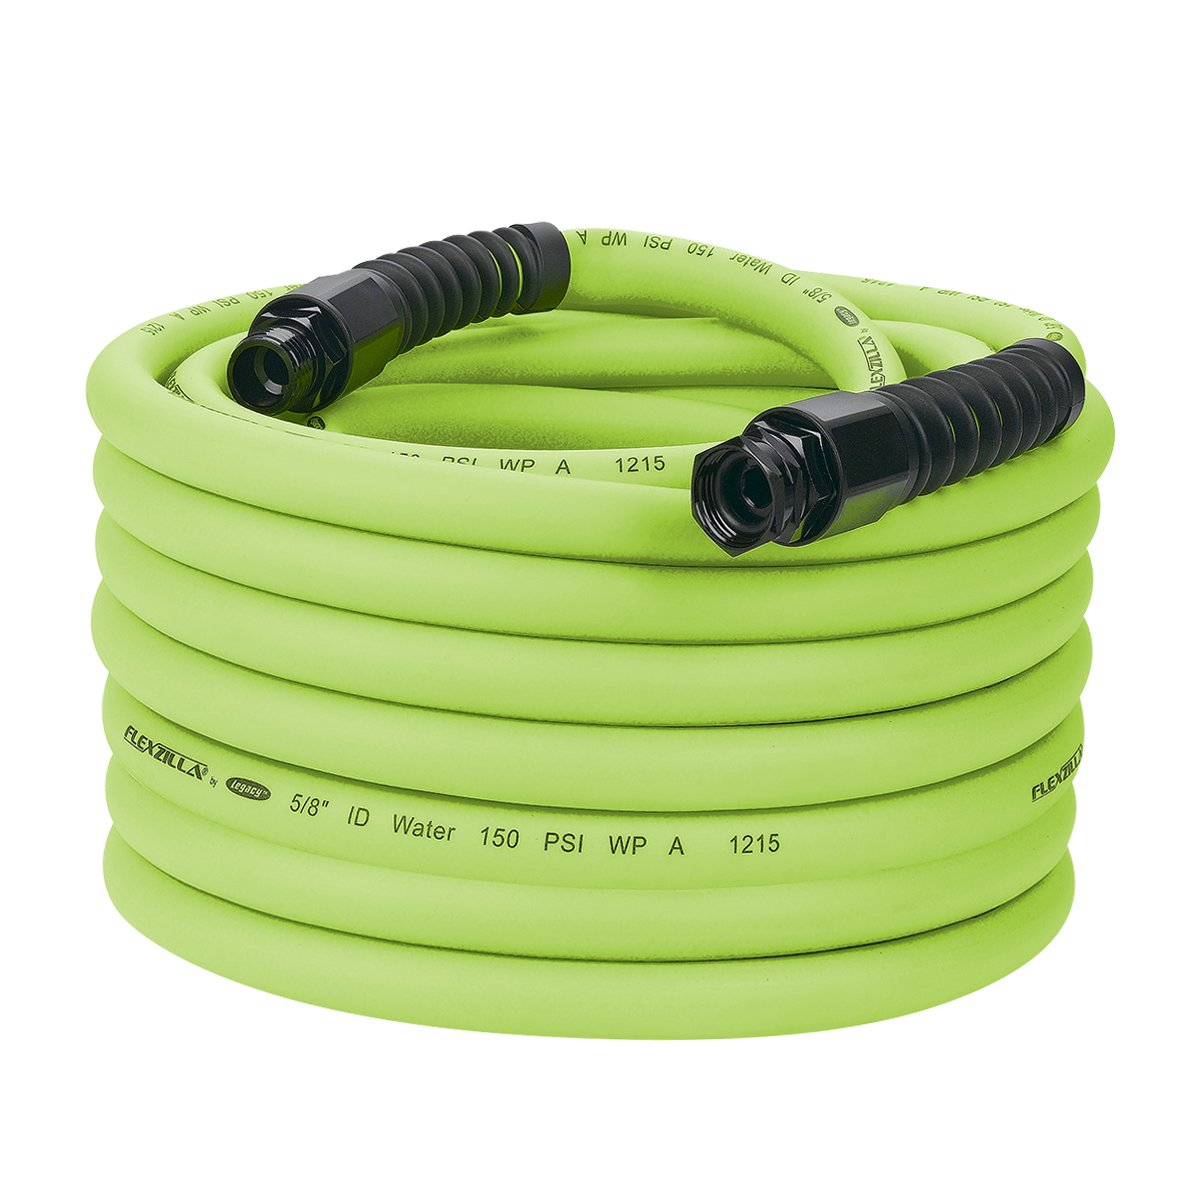 Flexzilla Pro Water Hose with Reusable Fittings, 5/8 in. x 75 ft, Heavy Duty, Lightweight, Drinking Water Safe - HFZWP575